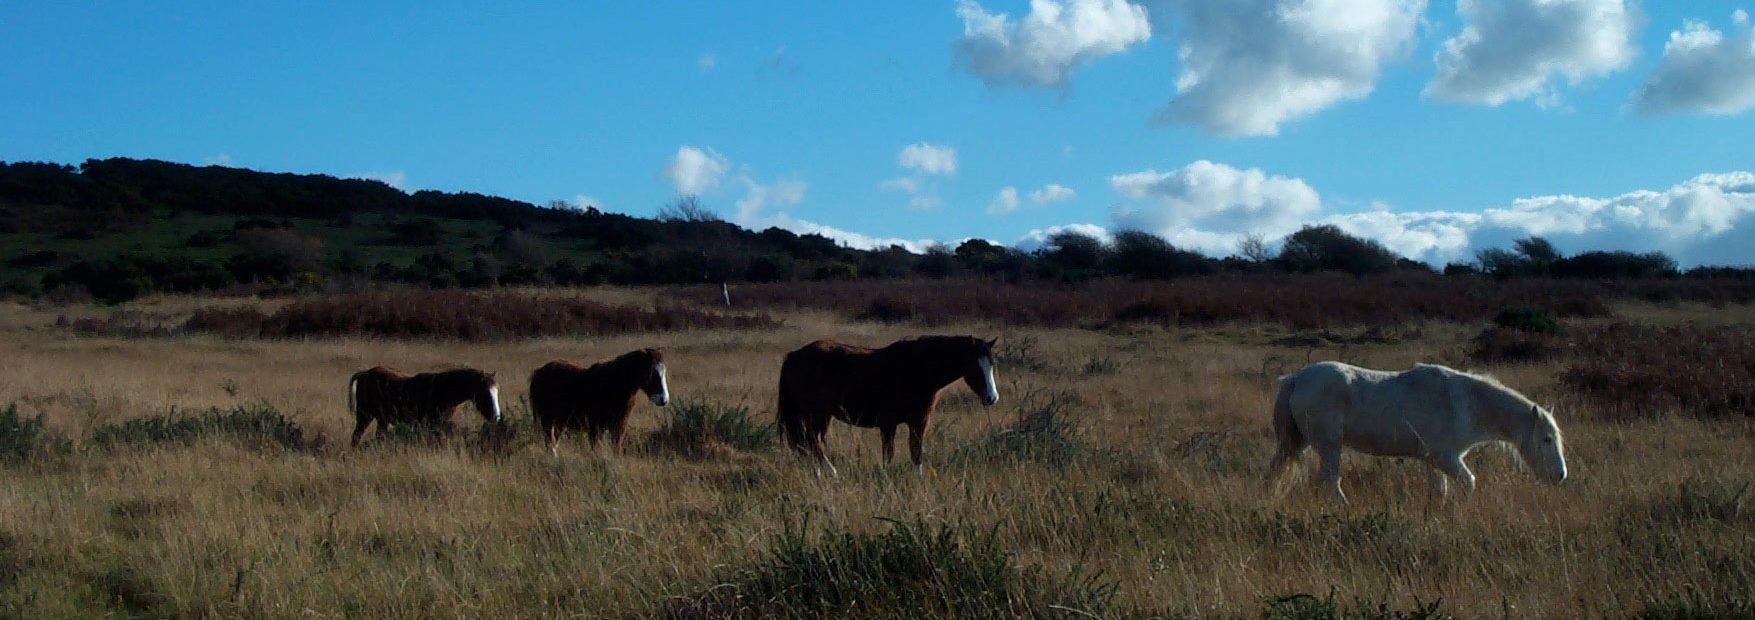 Gower-ponies-grazing-on-the-commons